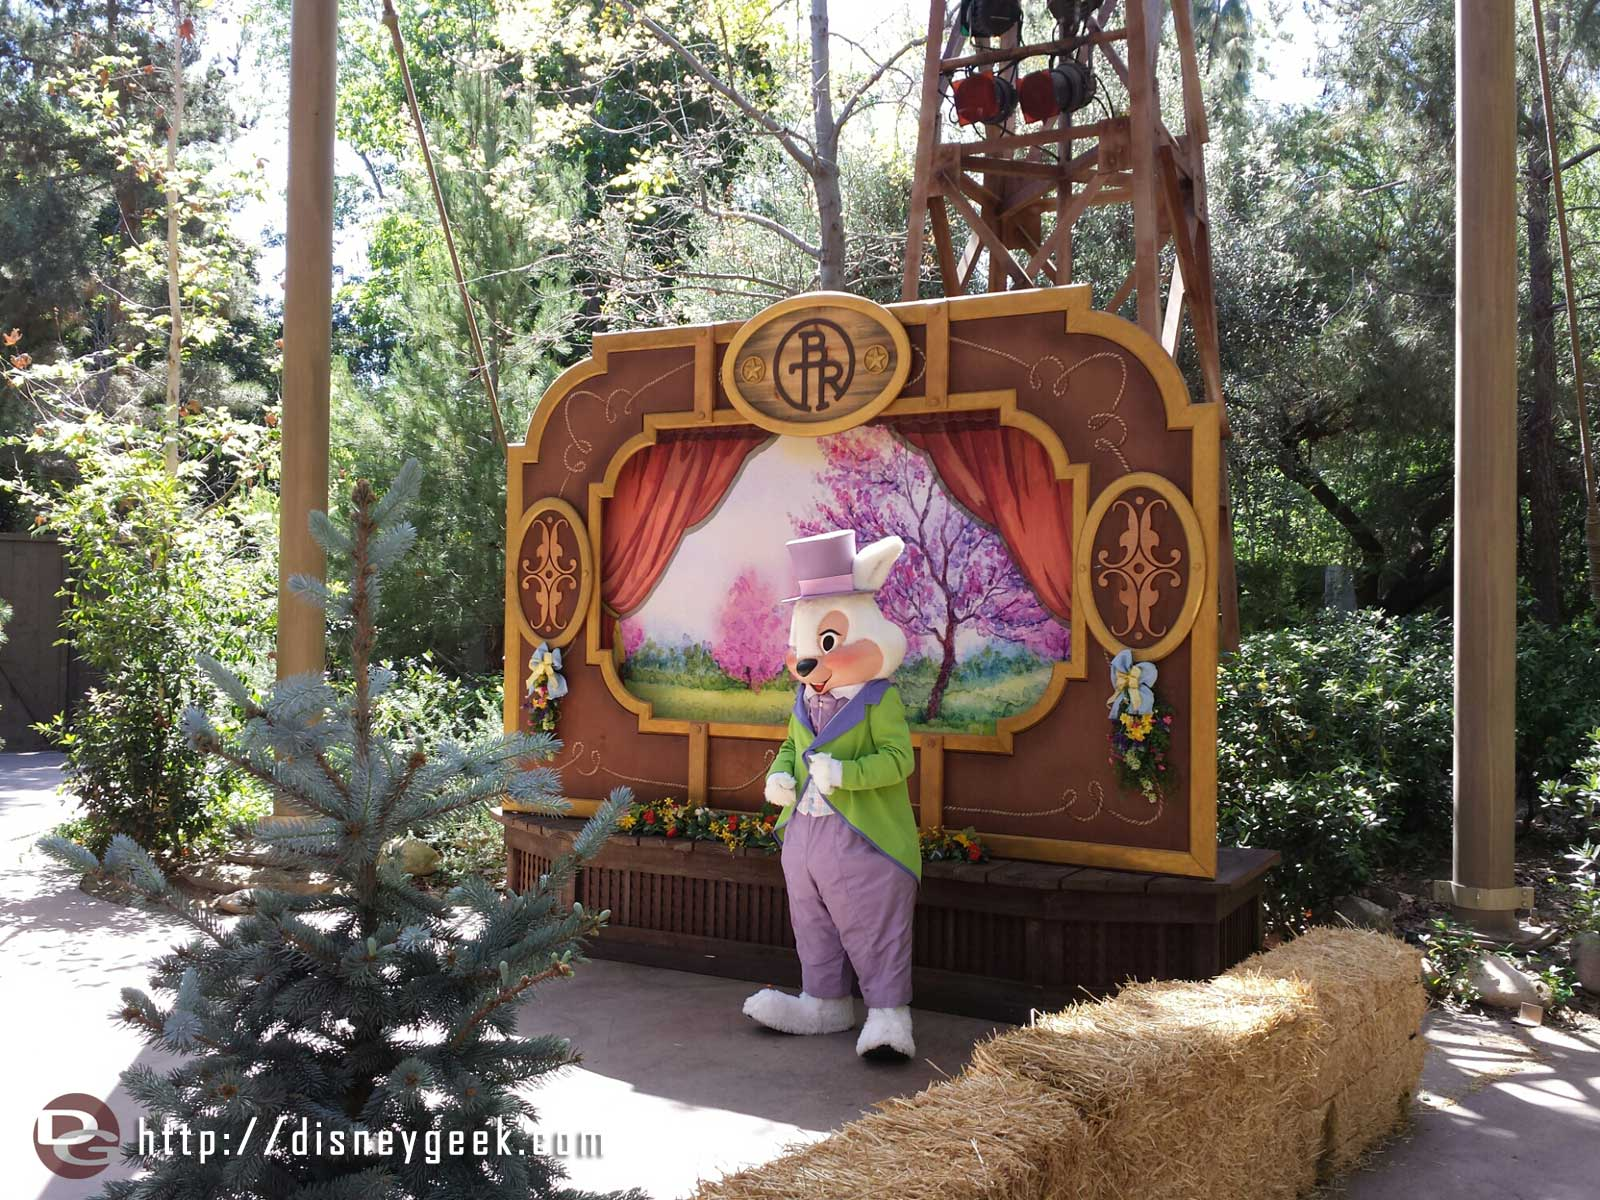 The Easter bunny greeting guests at the Springtime Roundup